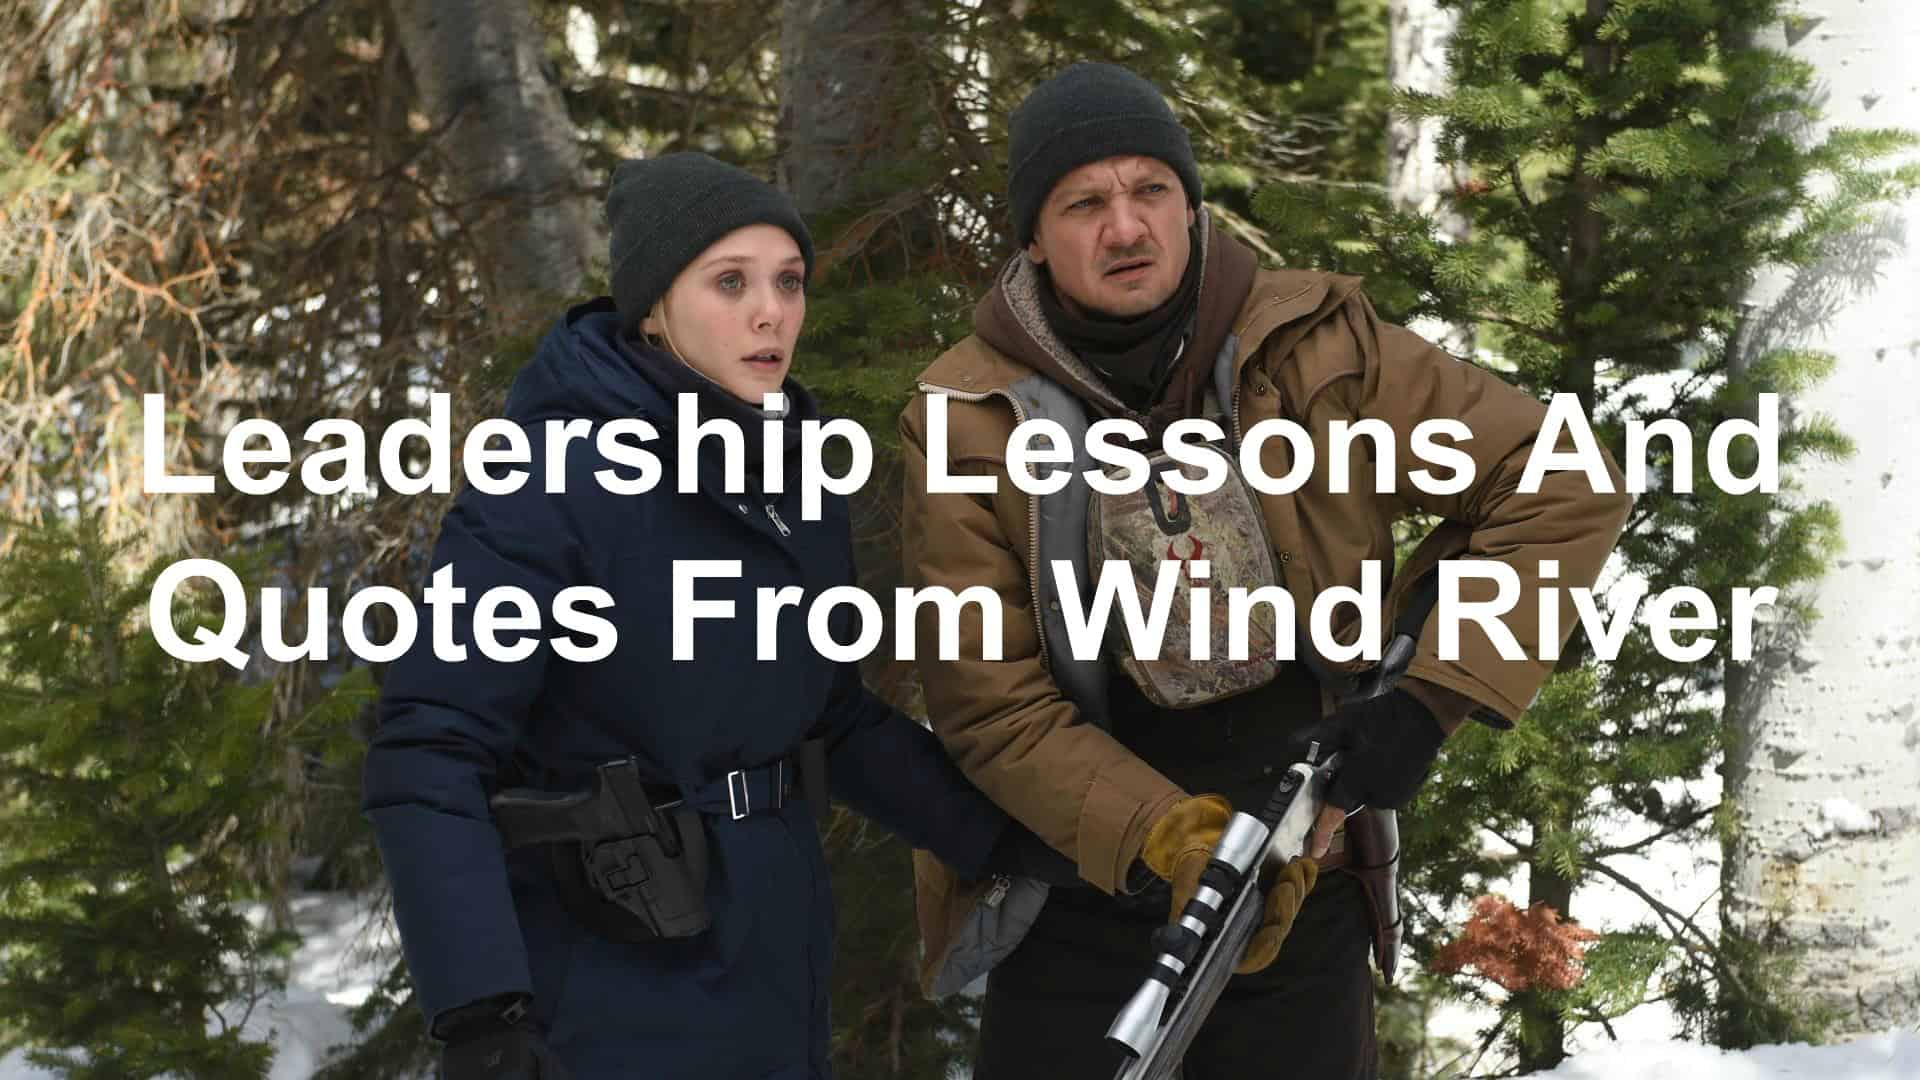 Leadership lessons and quotes from Wind River